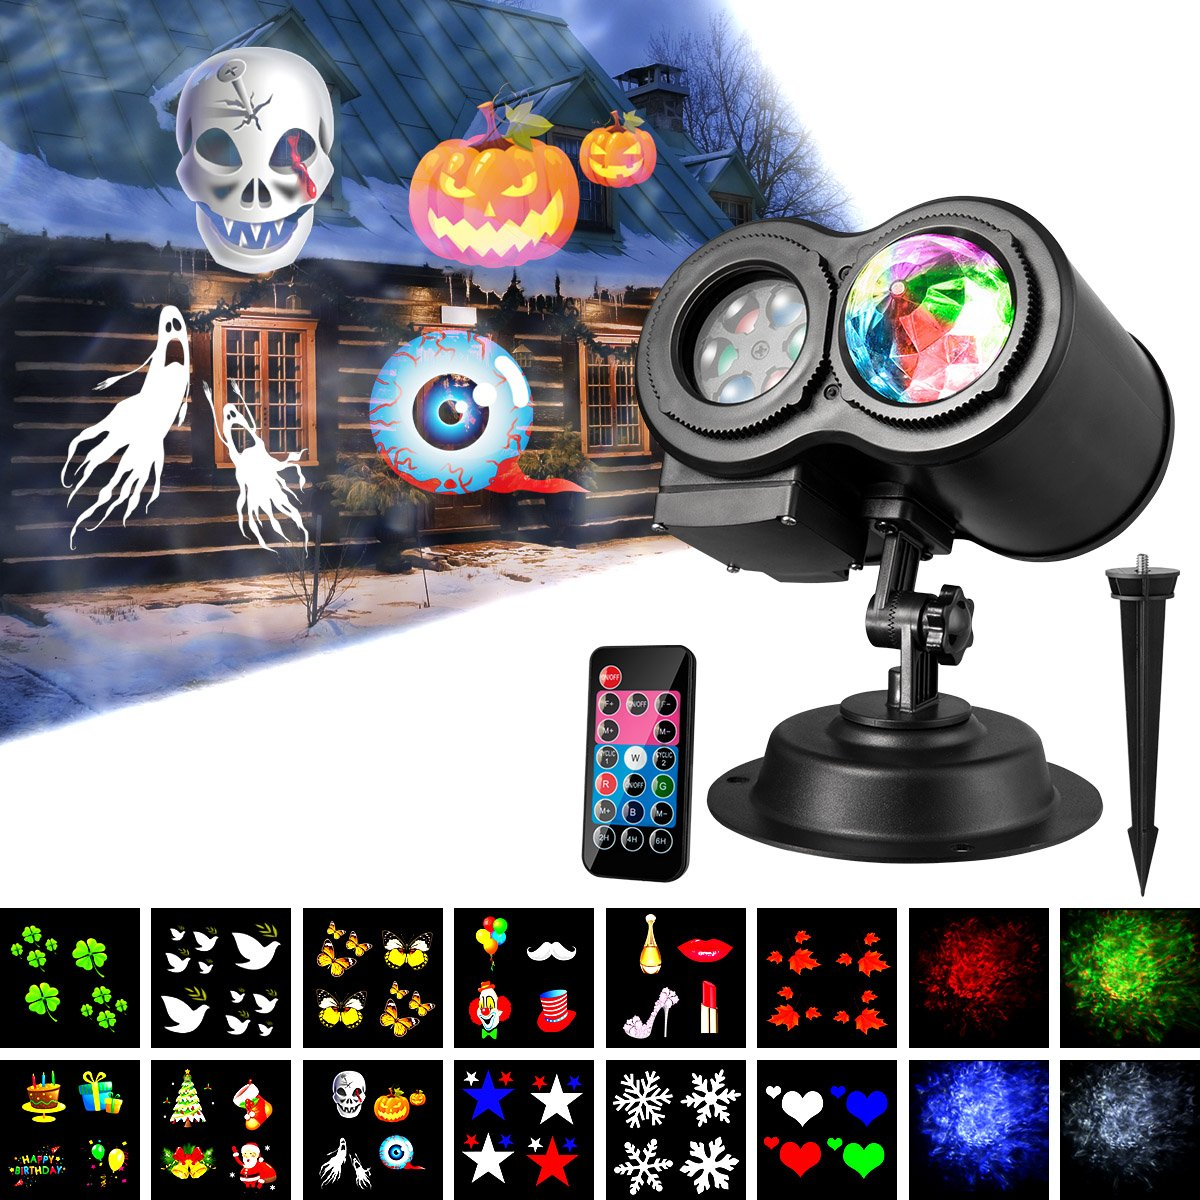 Halloween Light Projector,KingWill 12 Slides Pattem Wave Projector Light with Remote Controller for Outdoor Pattern and Wave Projector Light 2 in 1 Outdoor Party Lights Projector Landscape Lighting with Remote